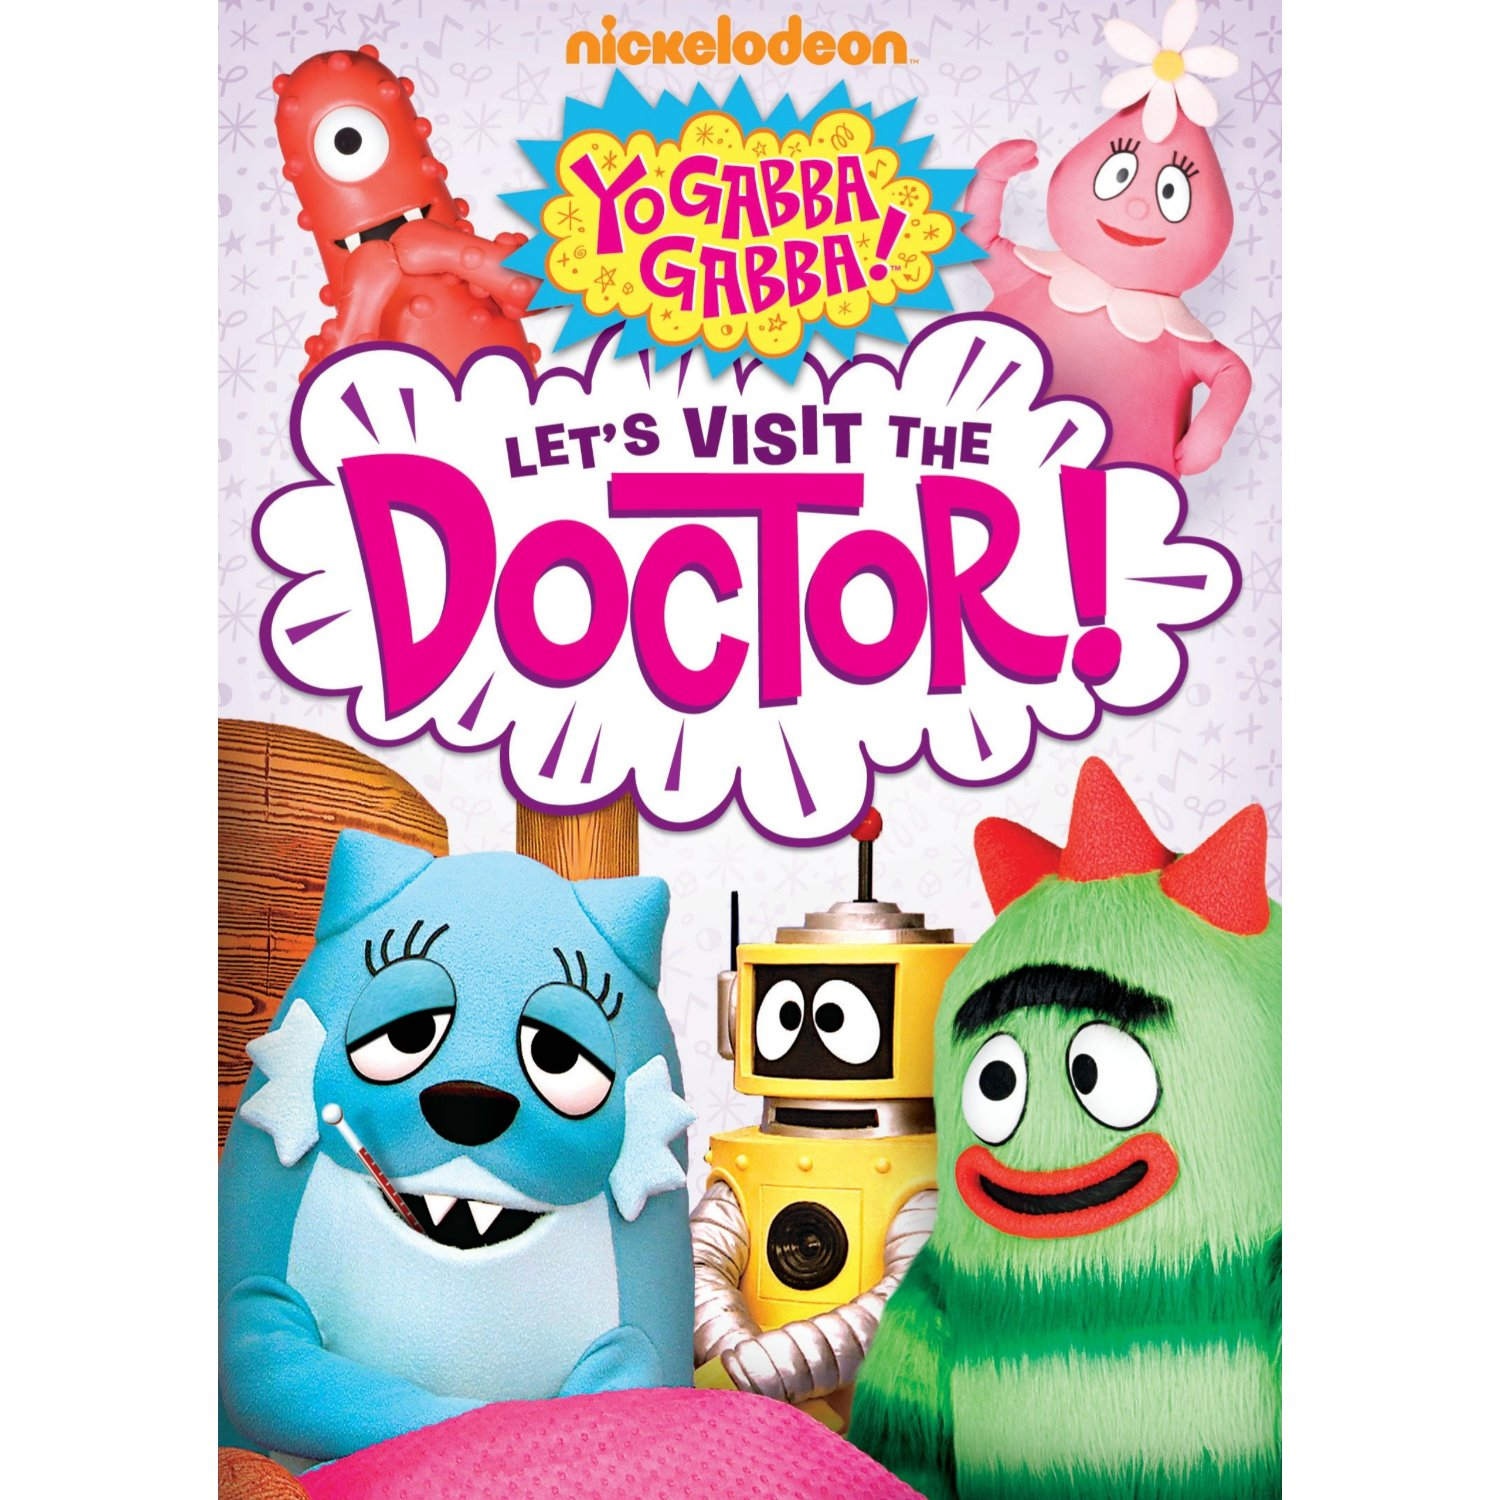 YO GABBA GABBA:  LET'S VISIT THE DOCTOR! DVD GIVEAWAY